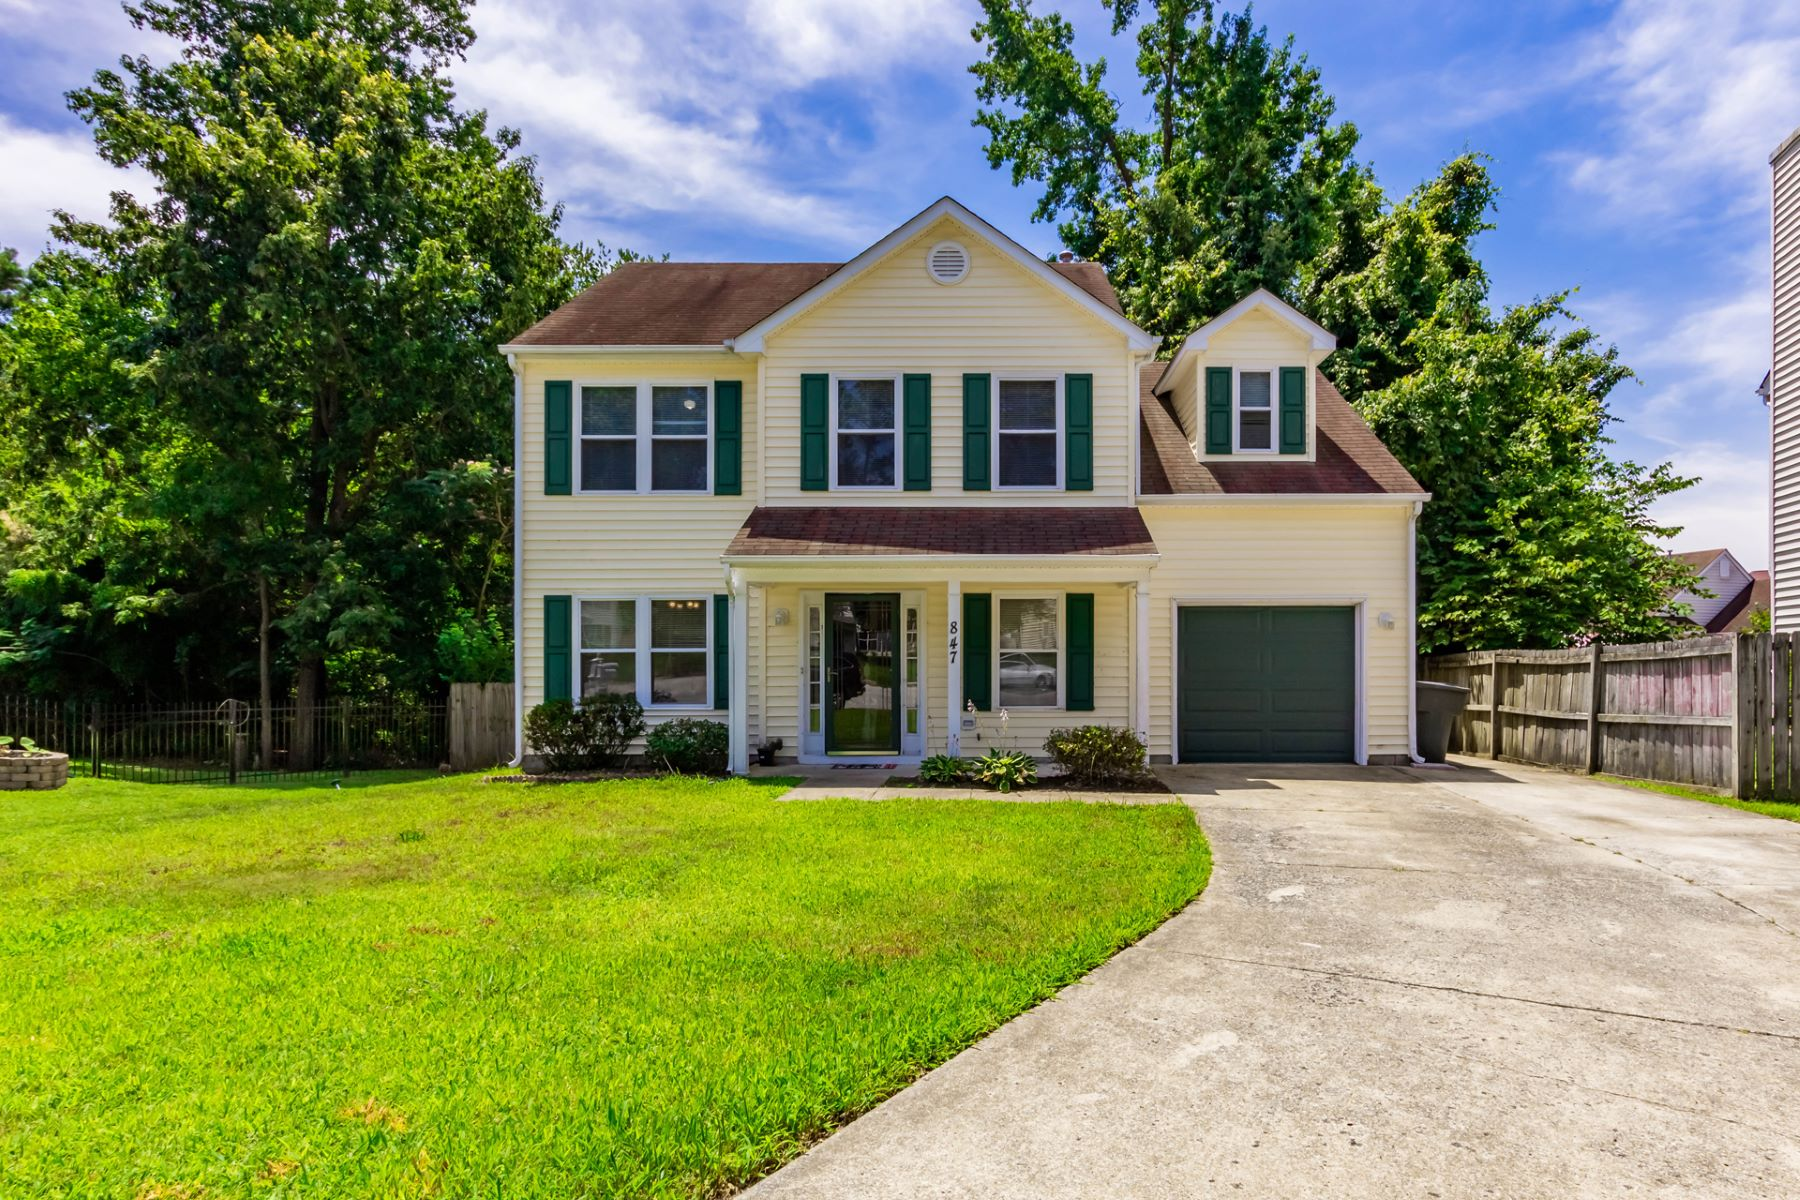 Single Family Homes for Sale at Clipper Creek 847 Chapin Wood Dr Newport News, Virginia 23608 United States